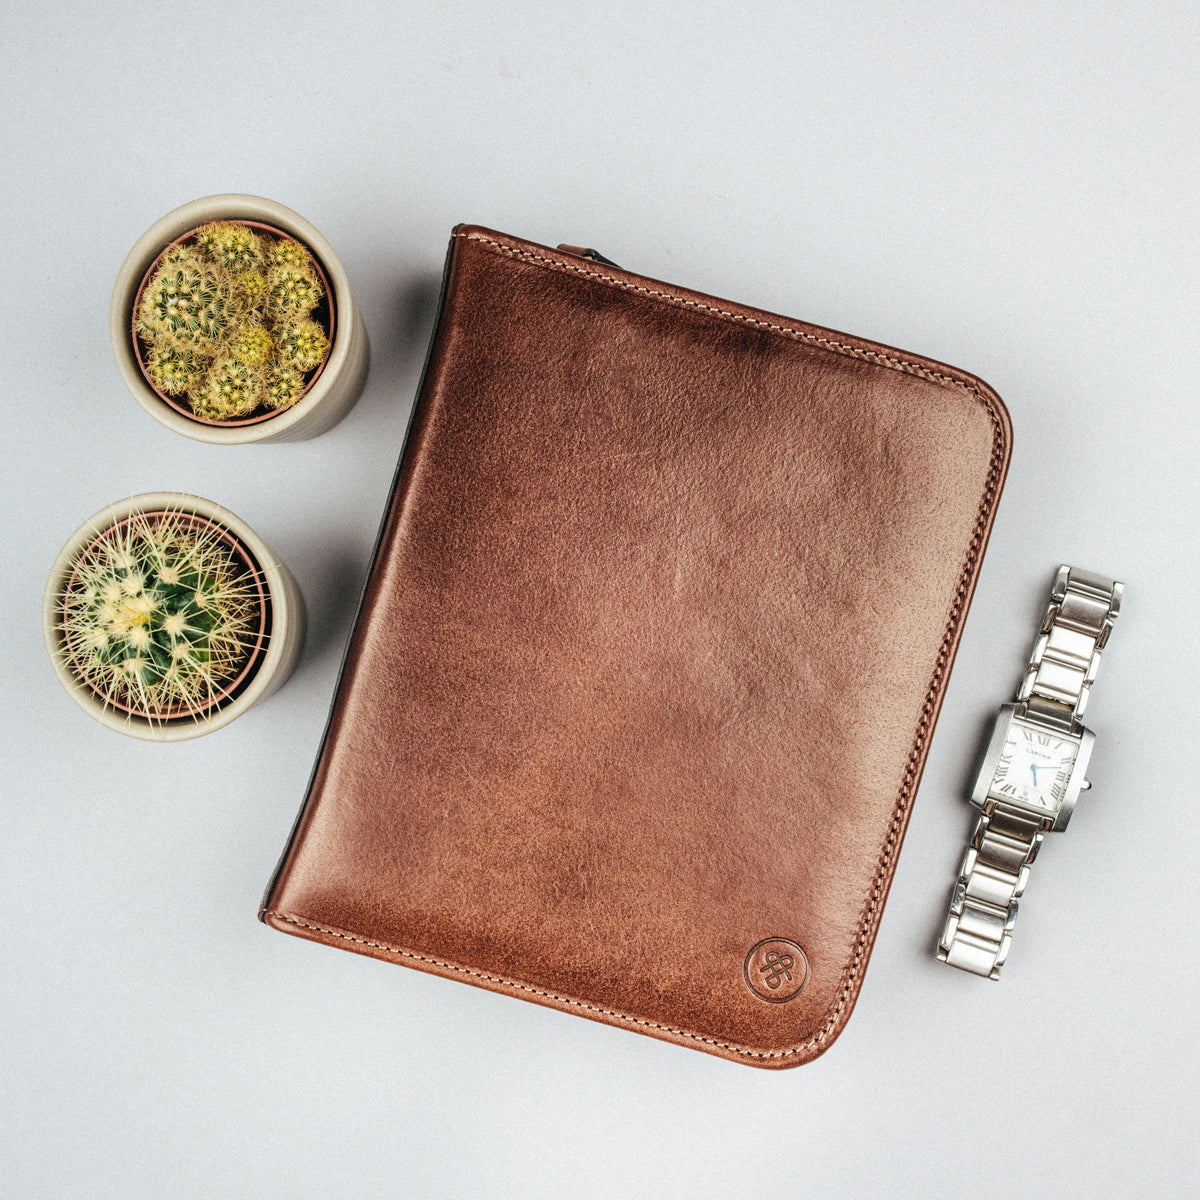 Image 5 of the 'Atella' Chestnut Veg-Tanned Leather Watch Presentation Case